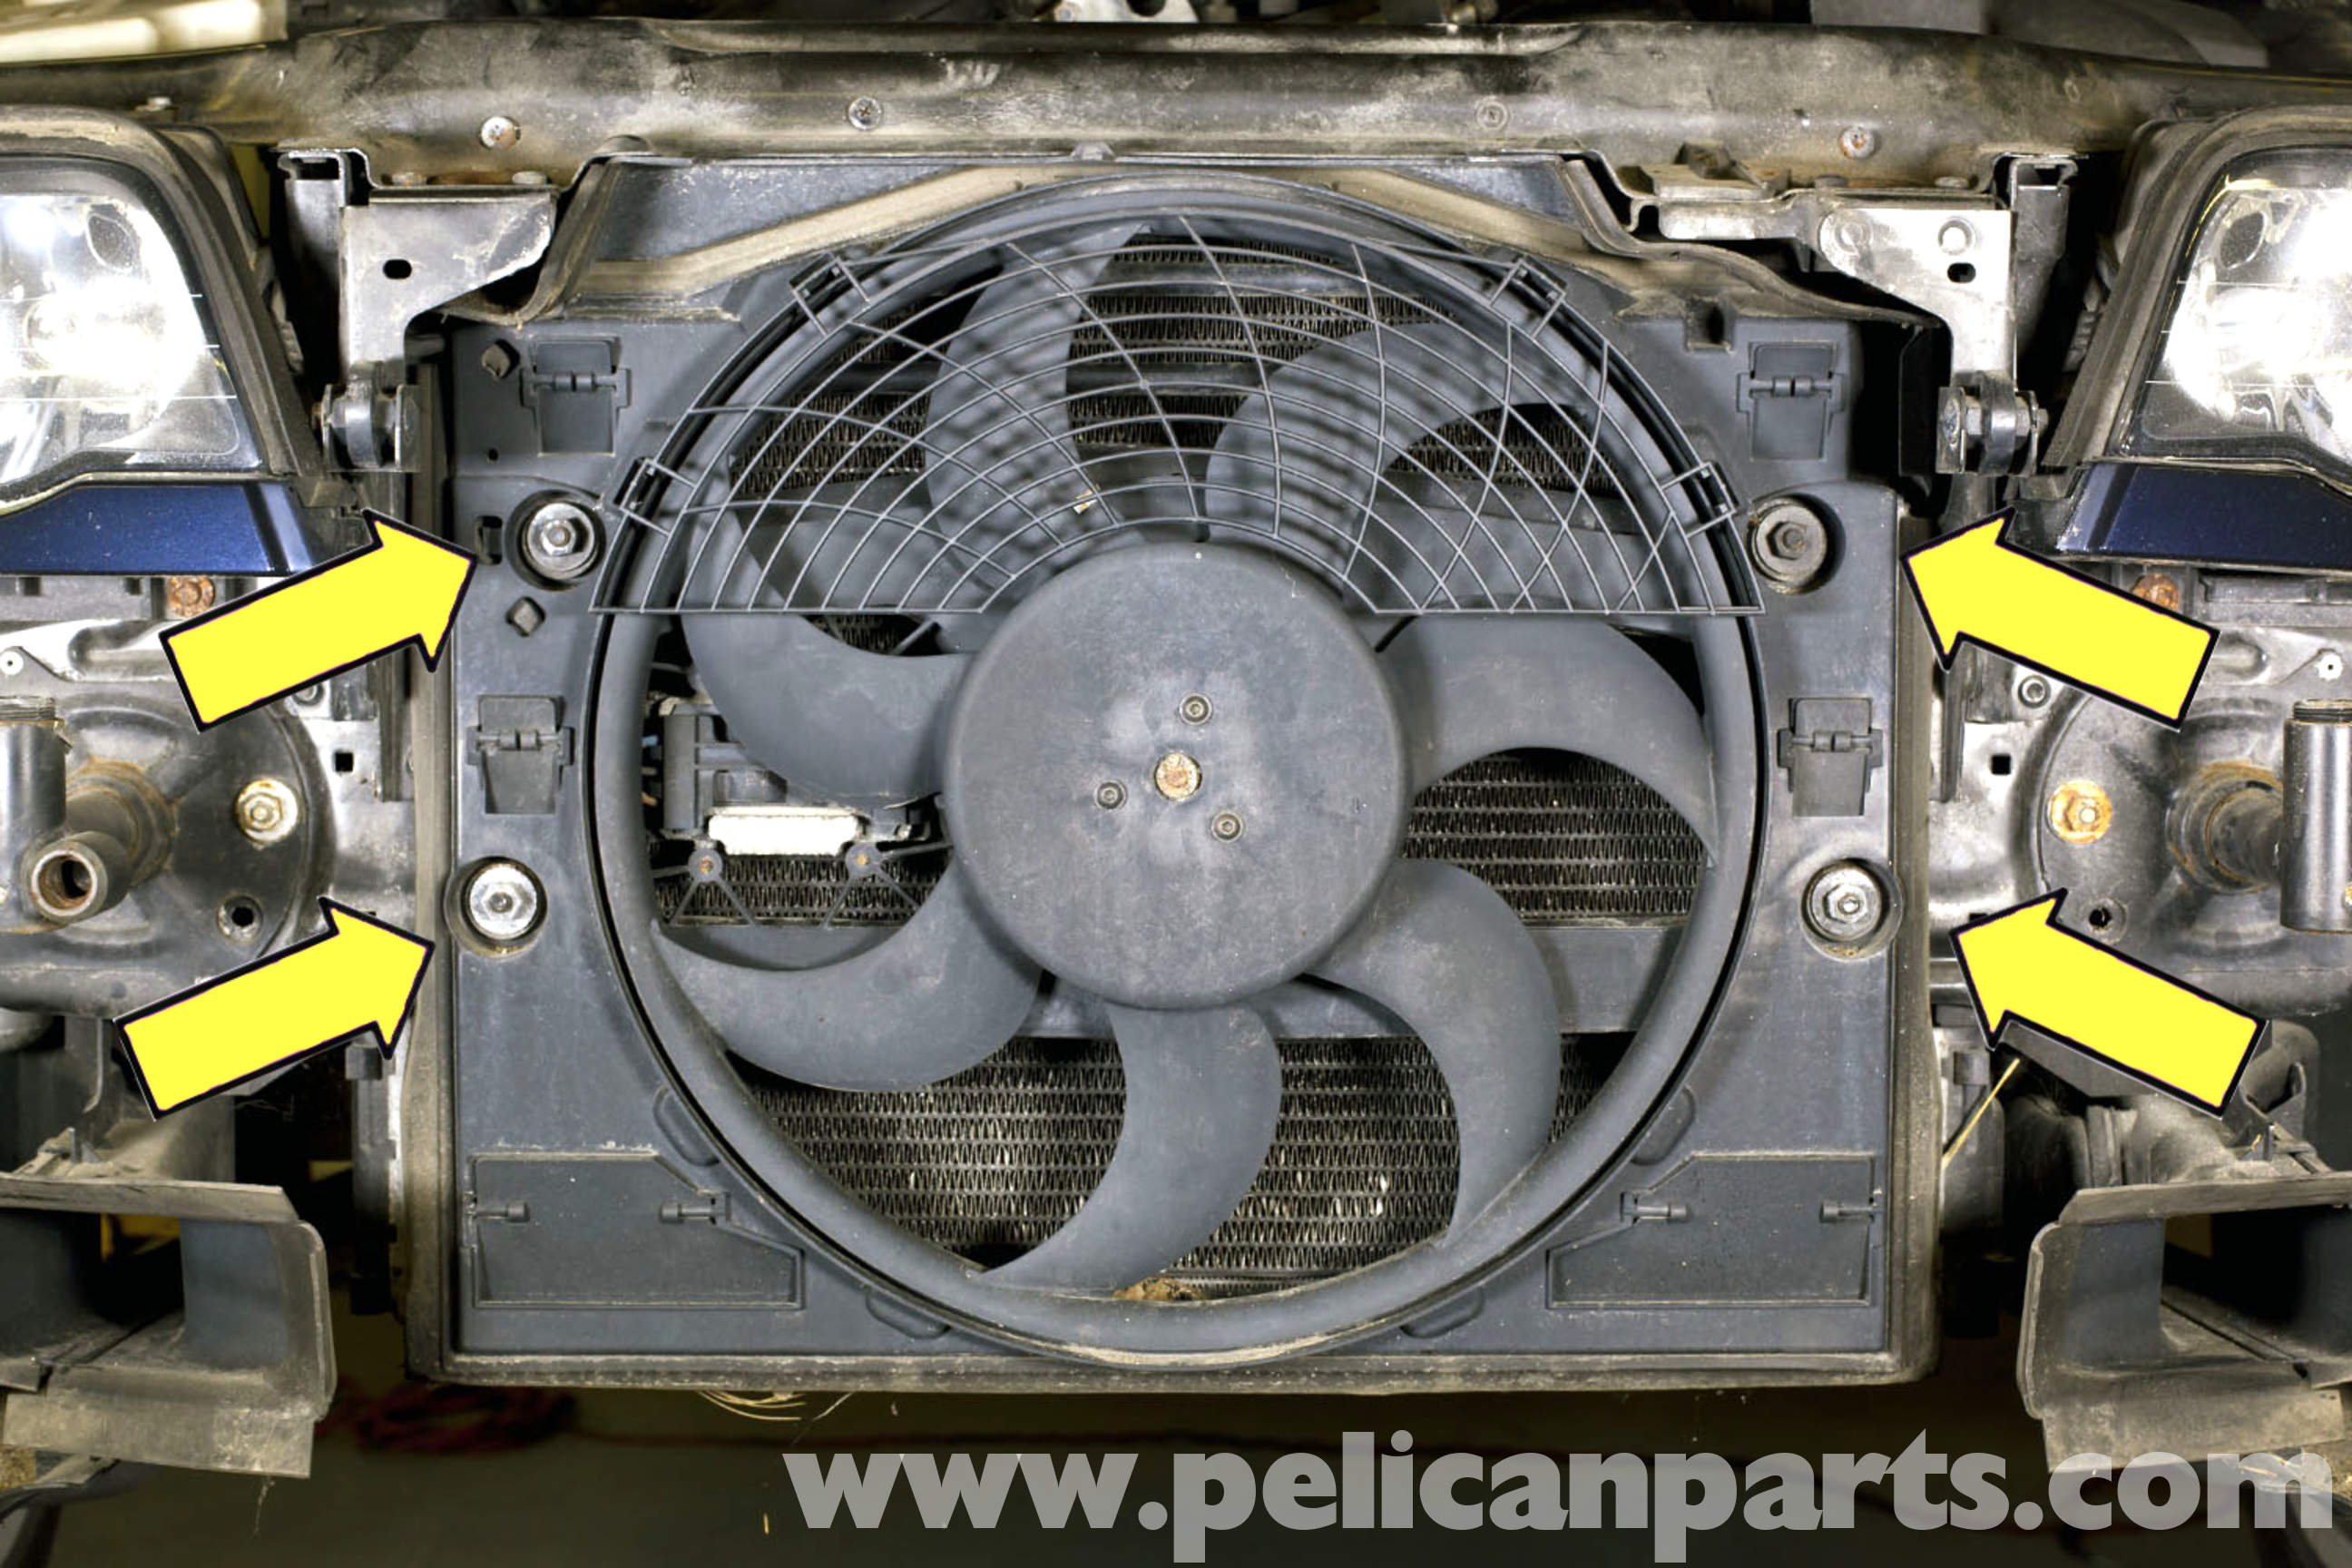 BMW E46 Cooling Fan Replacement | BMW 325i (2001-2005), BMW 325Xi ...